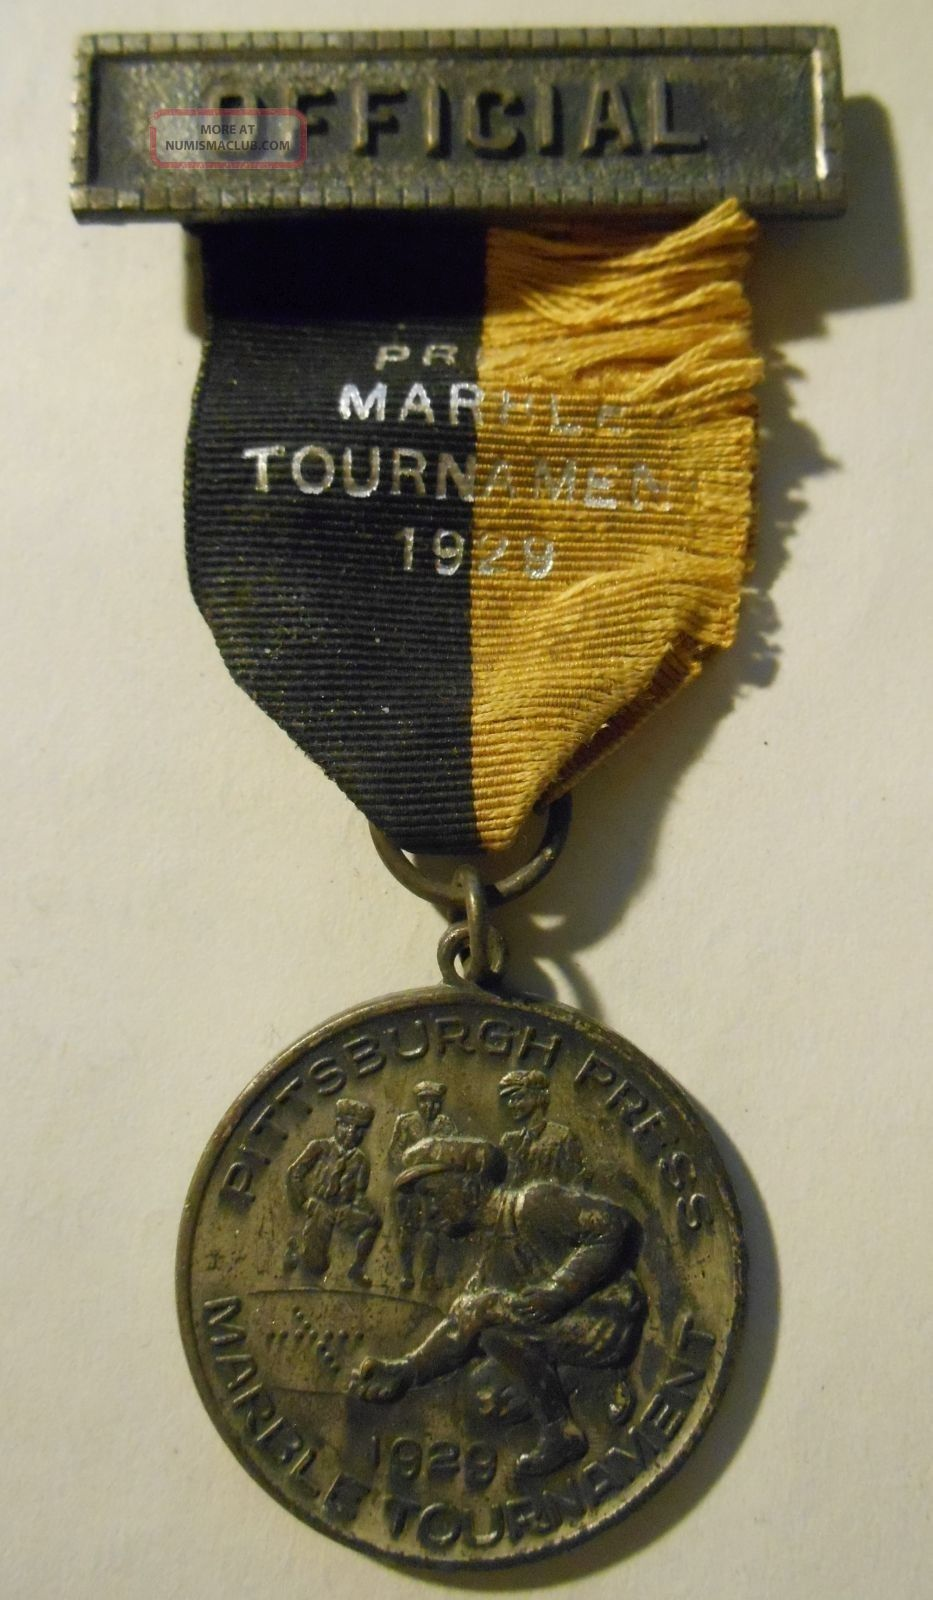 1929 Pittsburgh Press Marble Tournament ' Official ' Medal Complete & Real $0s&h Exonumia photo